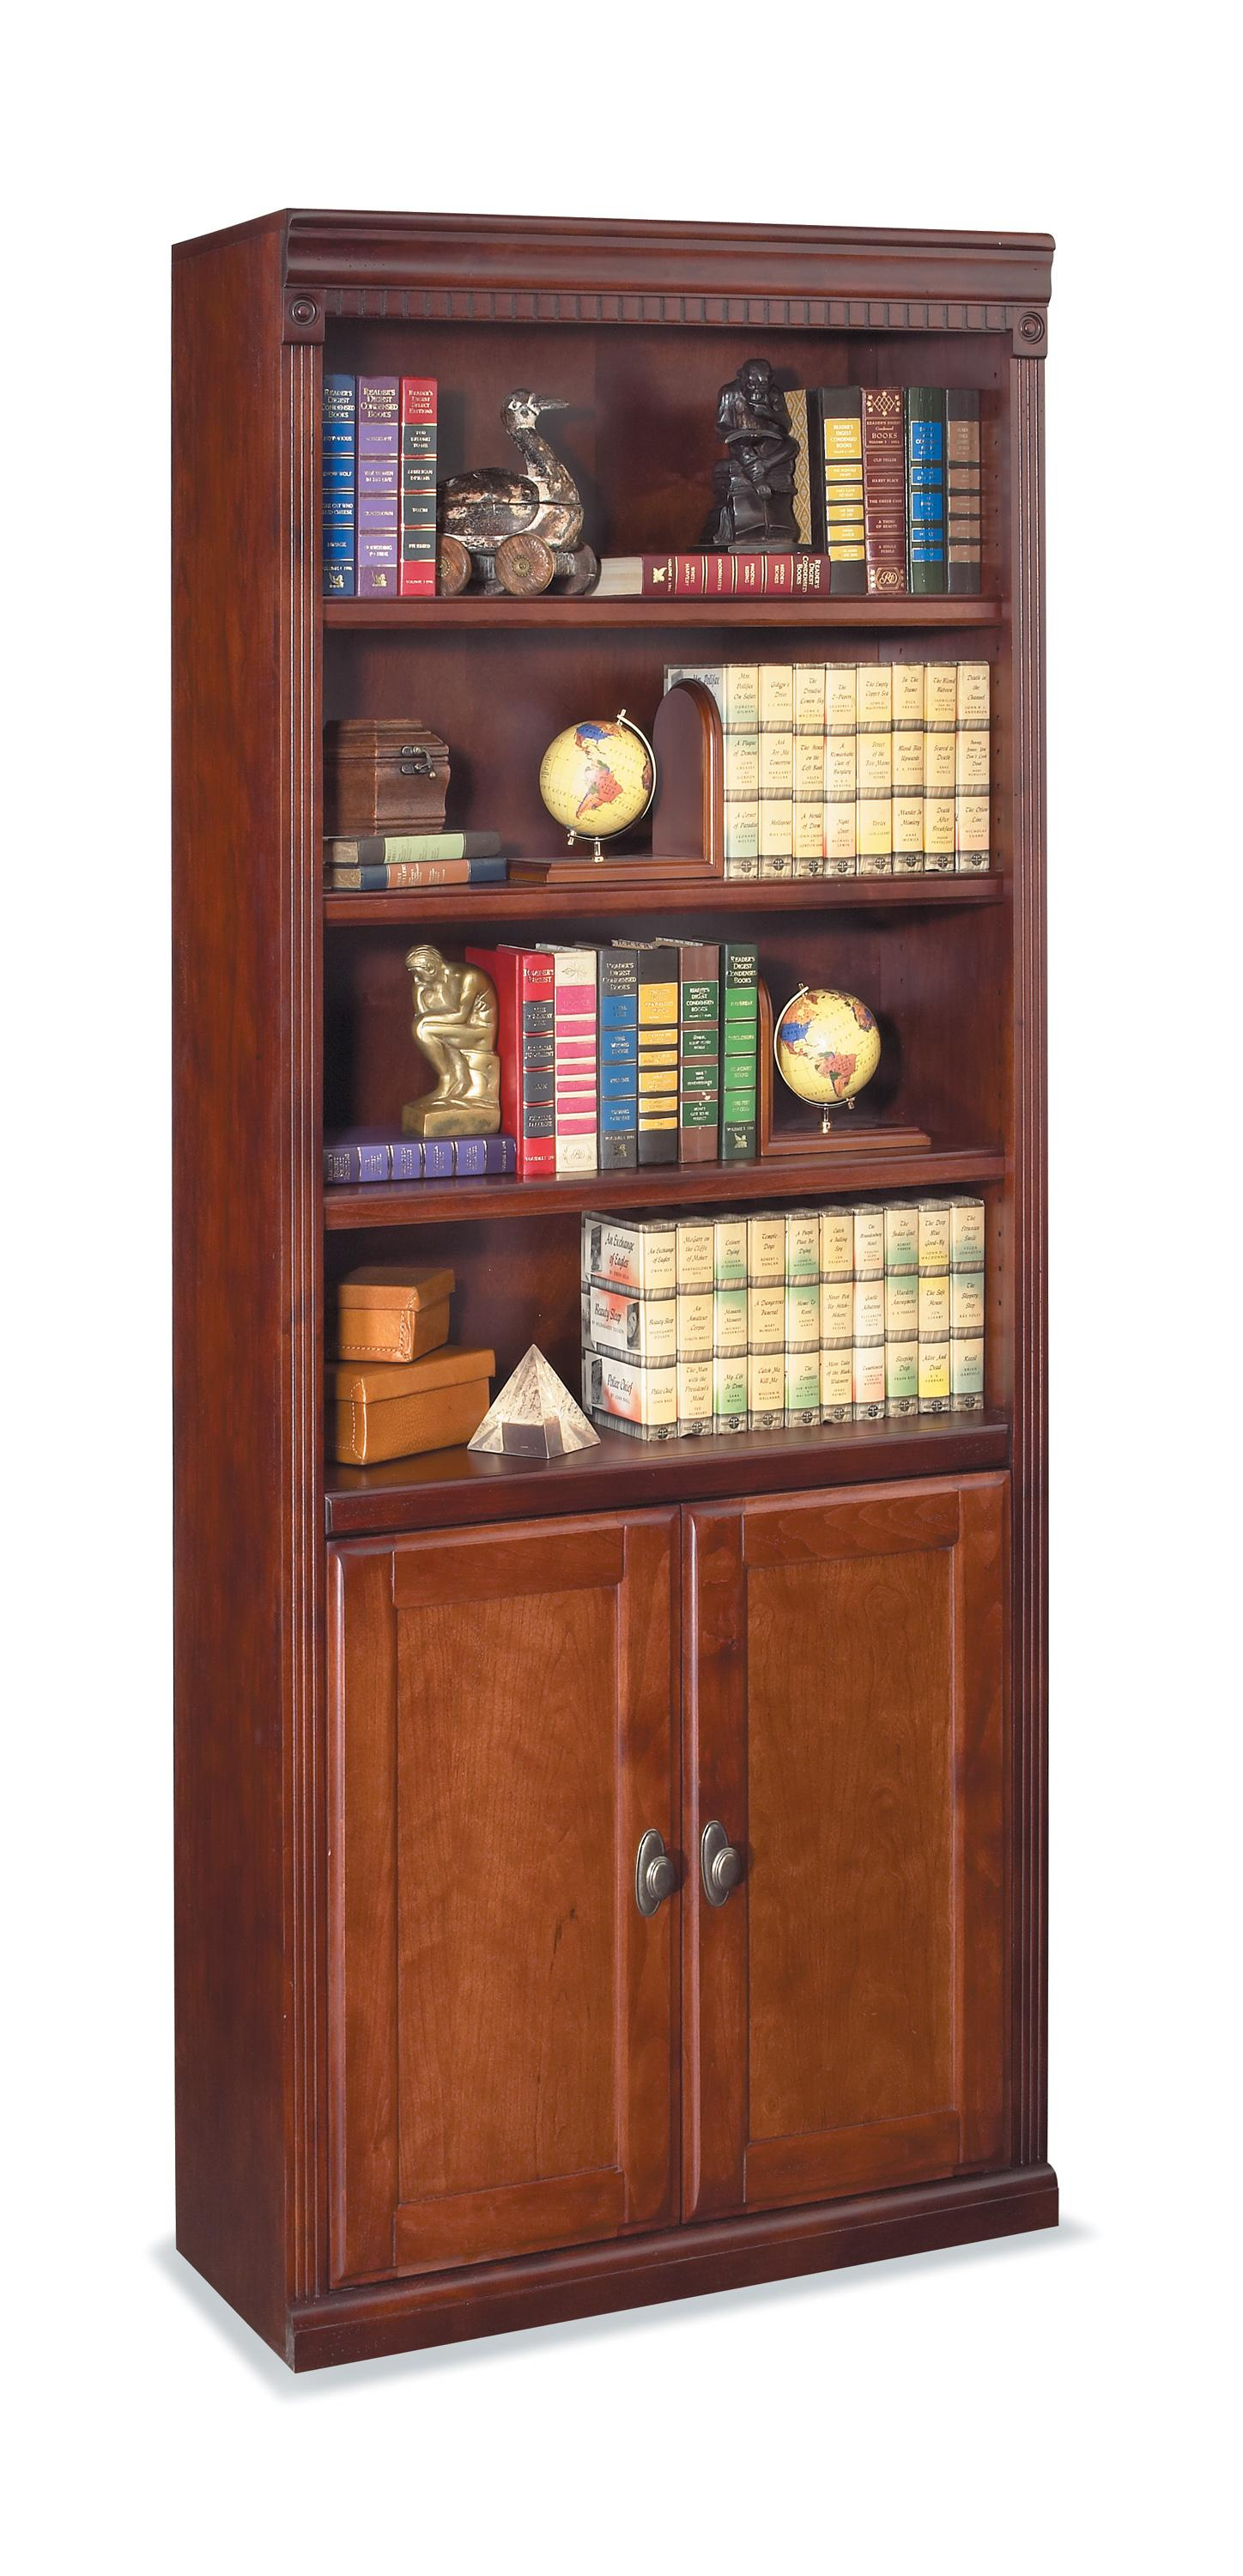 kathy ireland Home by Martin Huntington Club Bookcase with Lower Doors - Item Number: HCR3072D